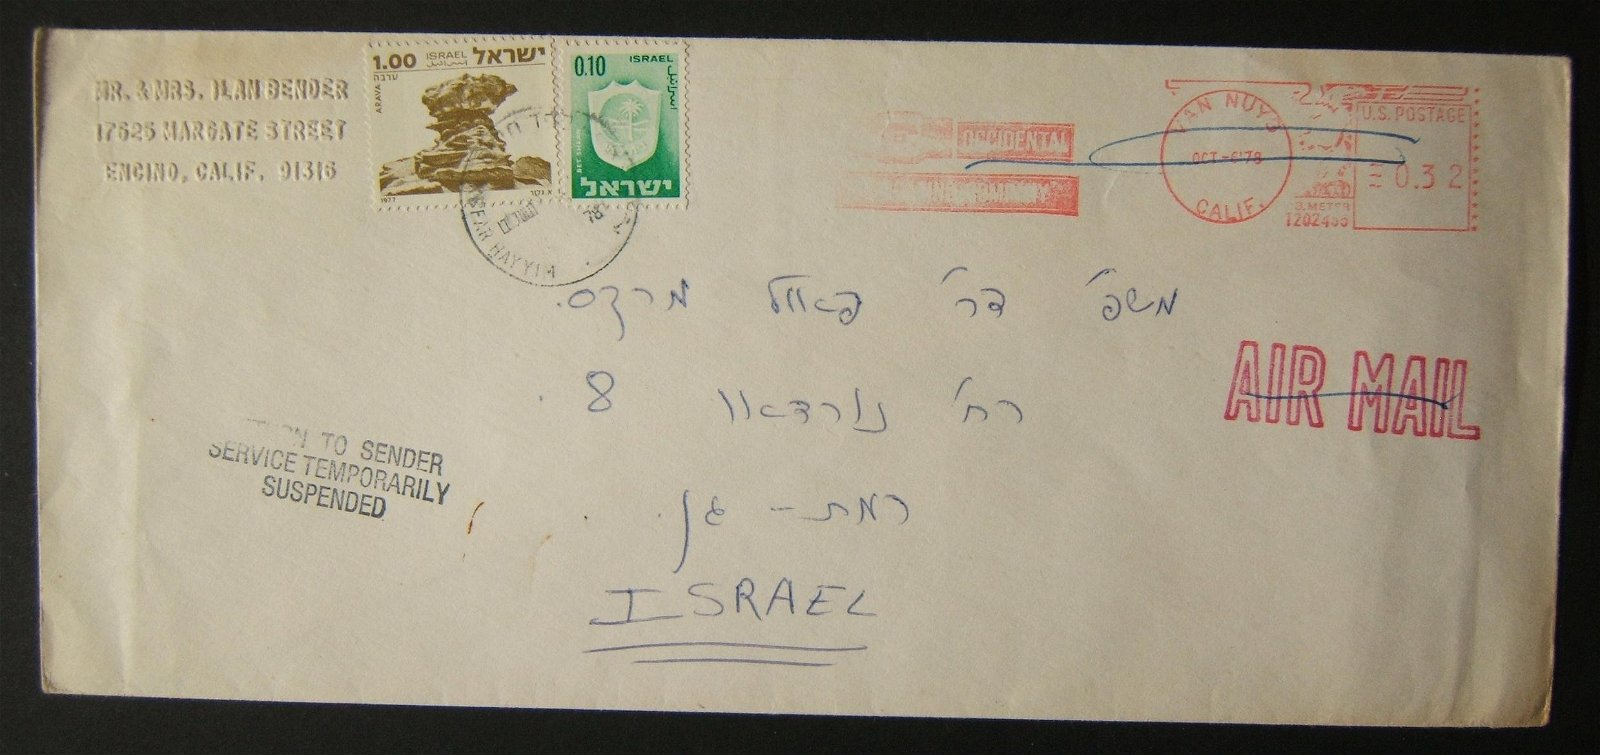 1978 US airmail affected by strike, sent by sea, taxed